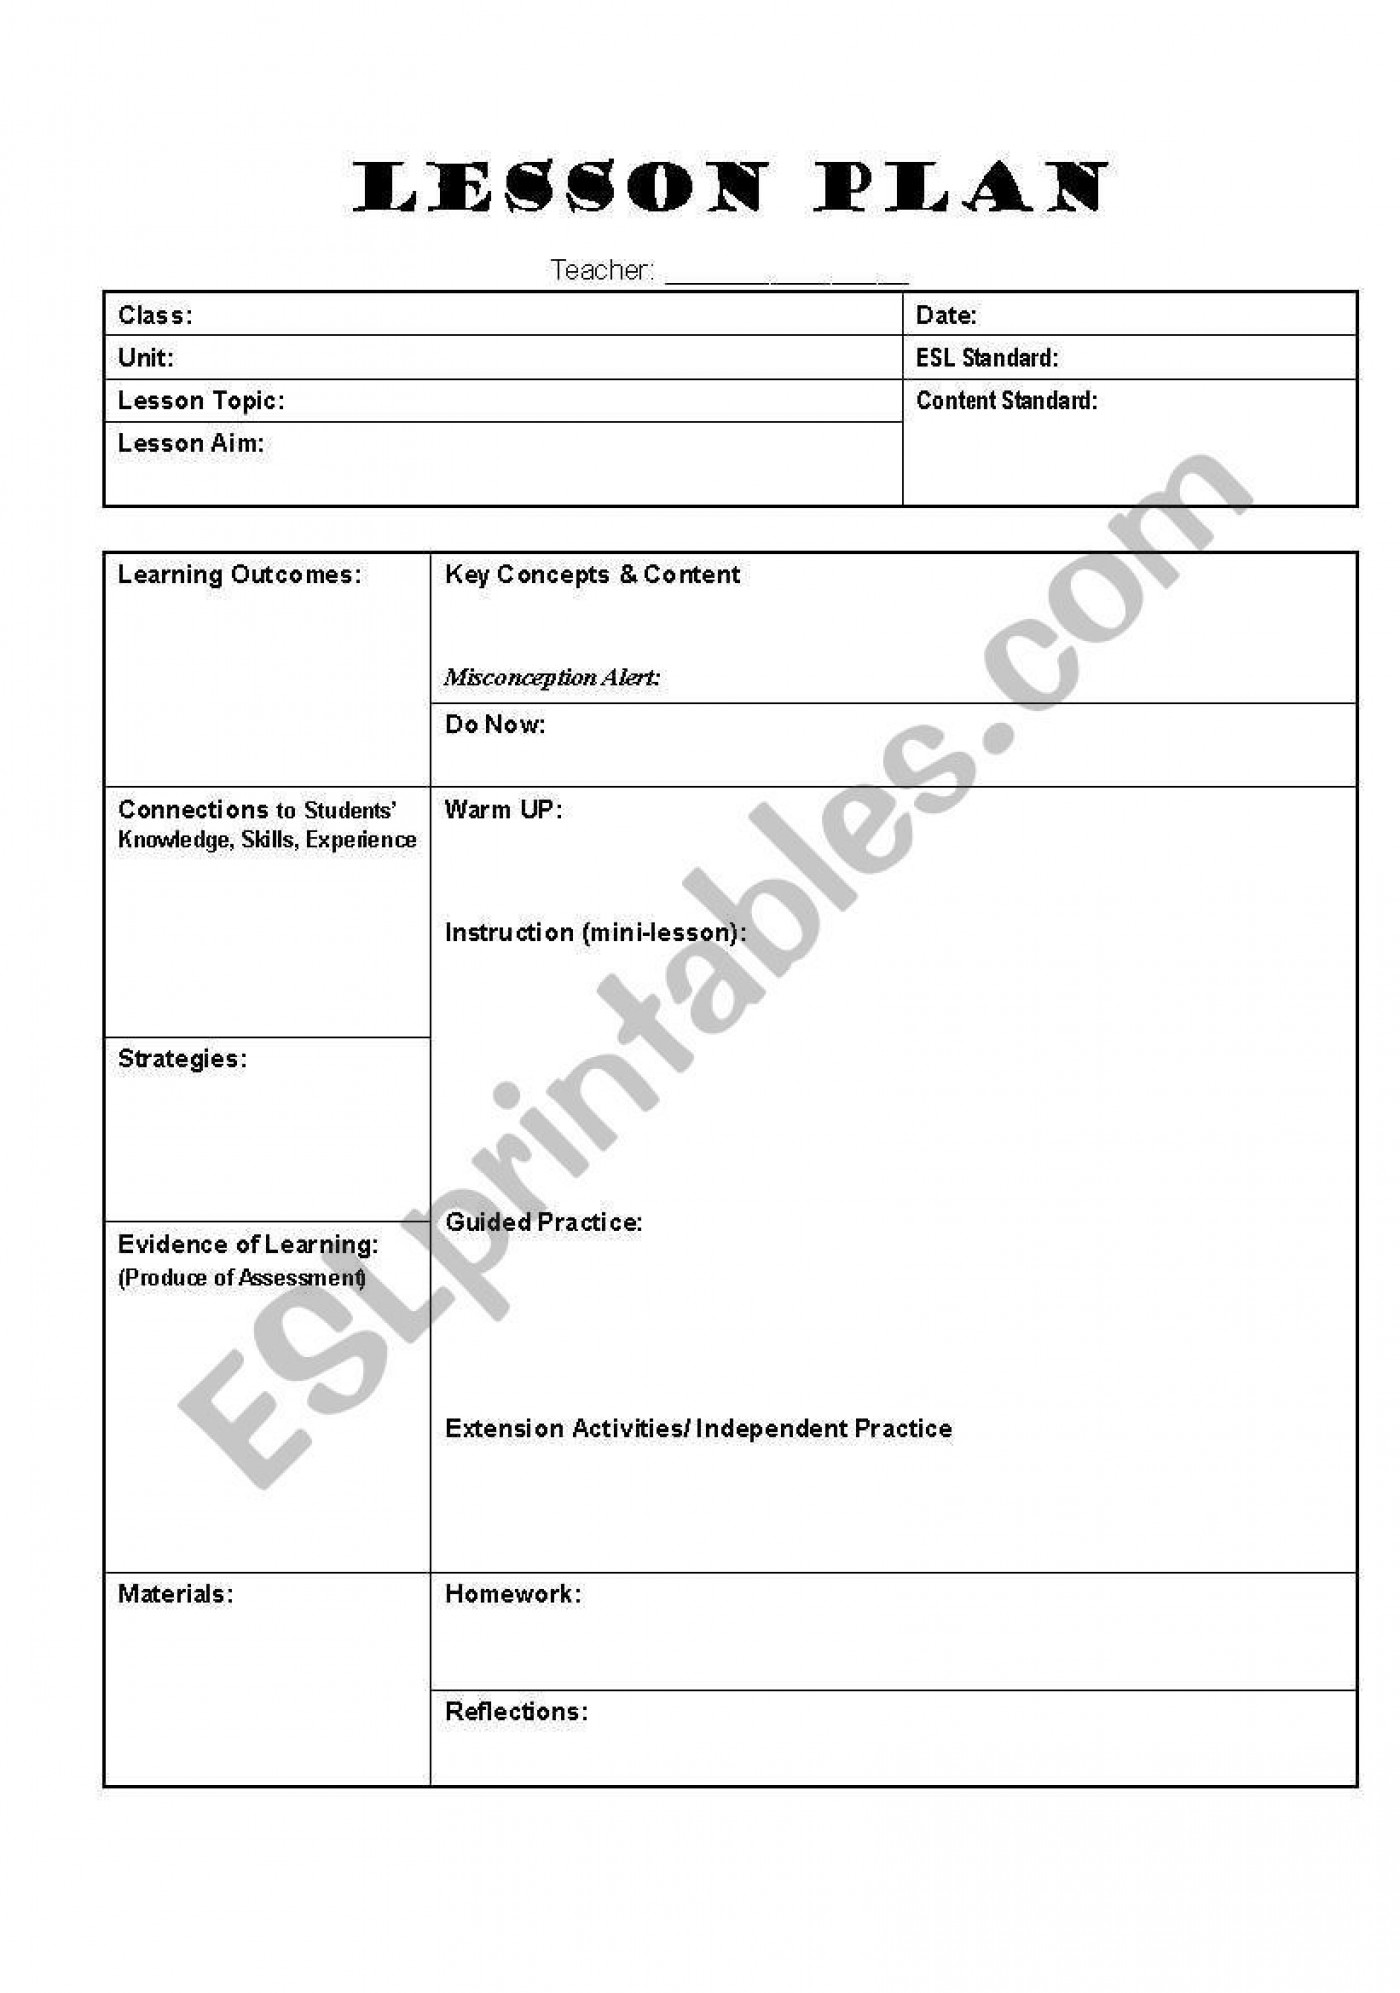 002 Exceptional Editable Lesson Plan Template Elementary Photo 1400